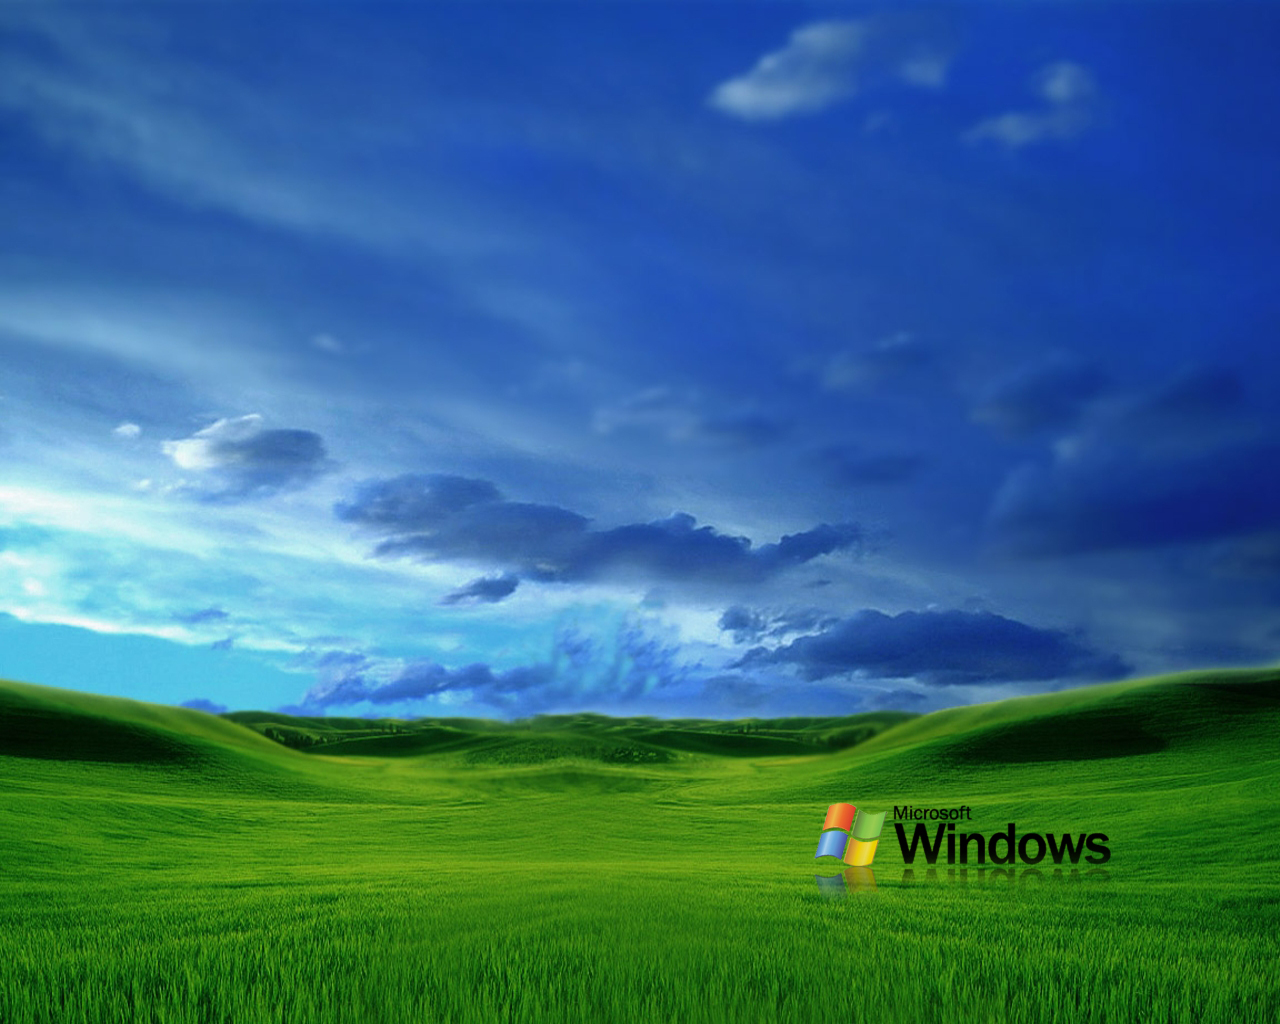 iappsoftscomimages of windows xp wallpaper 24 next image 26html 1280x1024